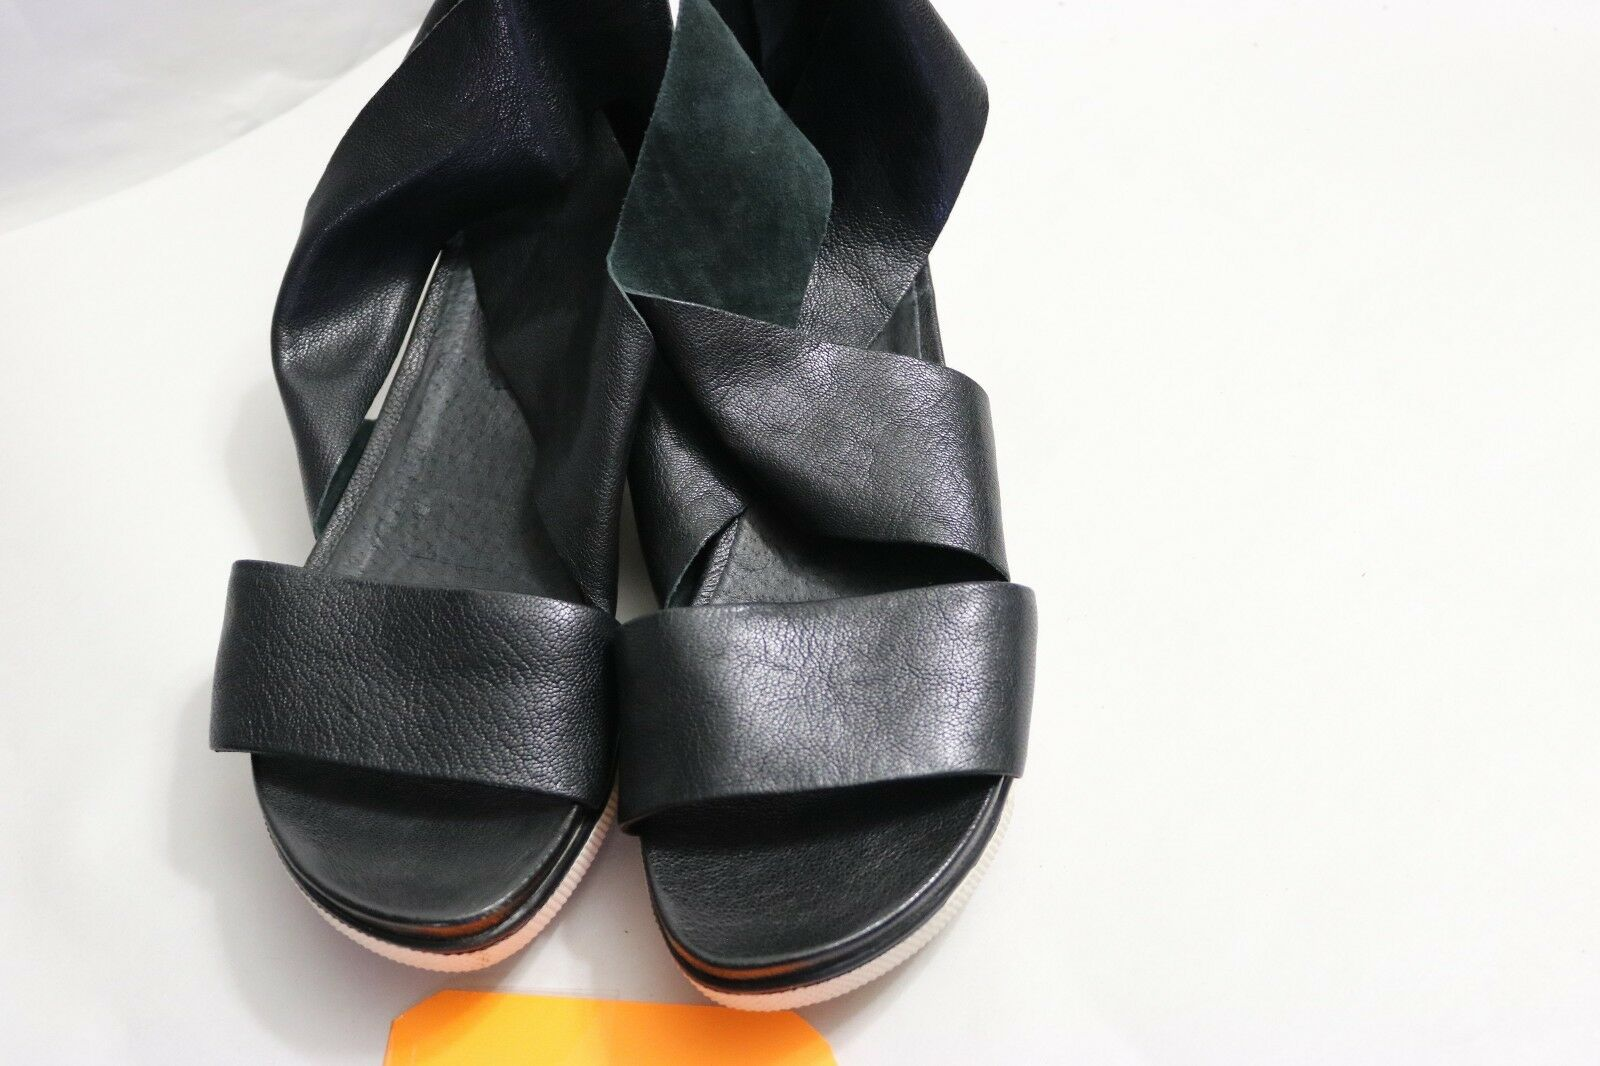 B-444  Women's Eileen Fisher Sport Platform Black Leather Sandal Size 7  1 2 M